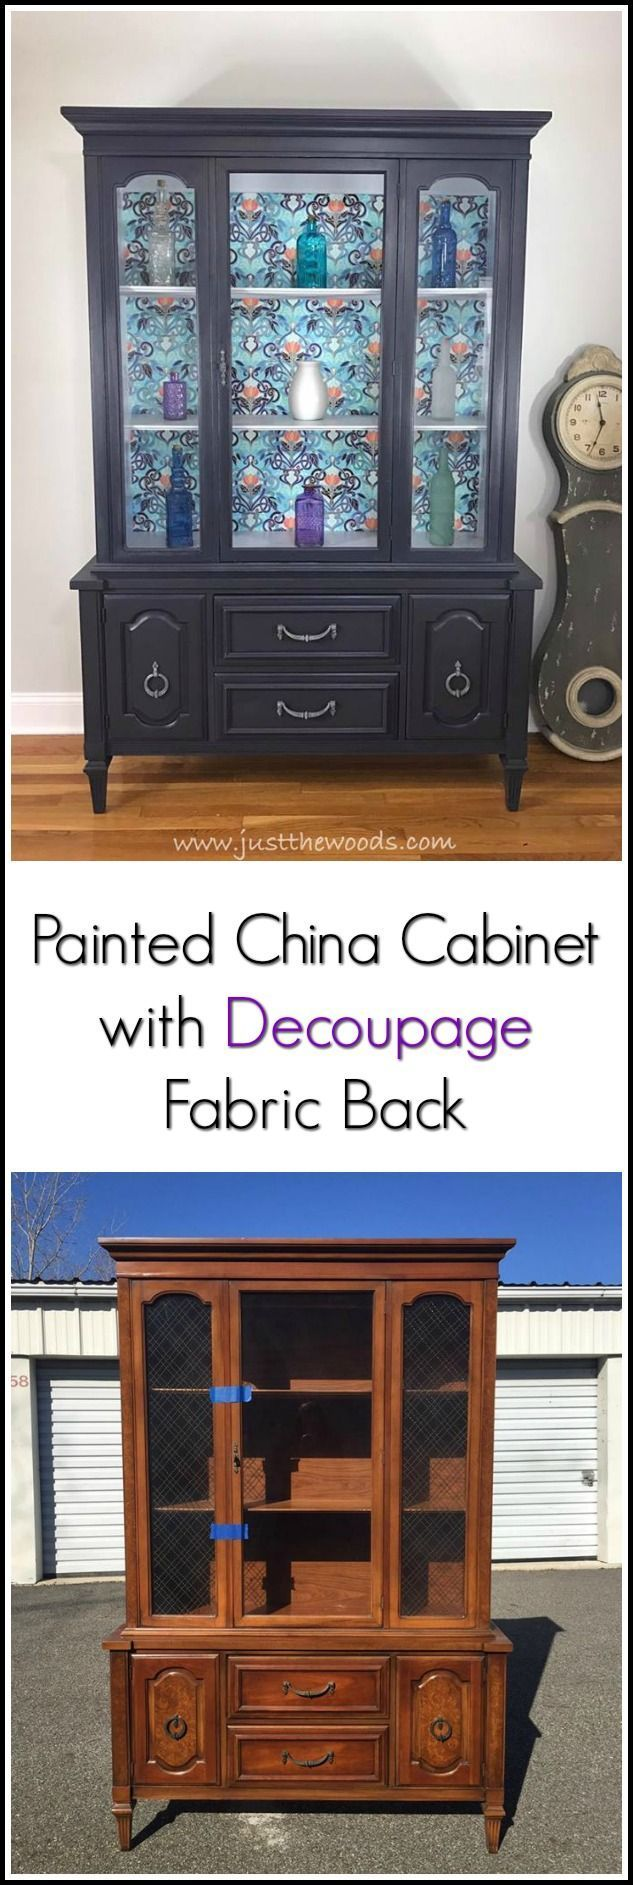 China Cabinet With Decoupage Fabric Backing Painted China Cabinets Vintage China Cabinets Furniture Makeover